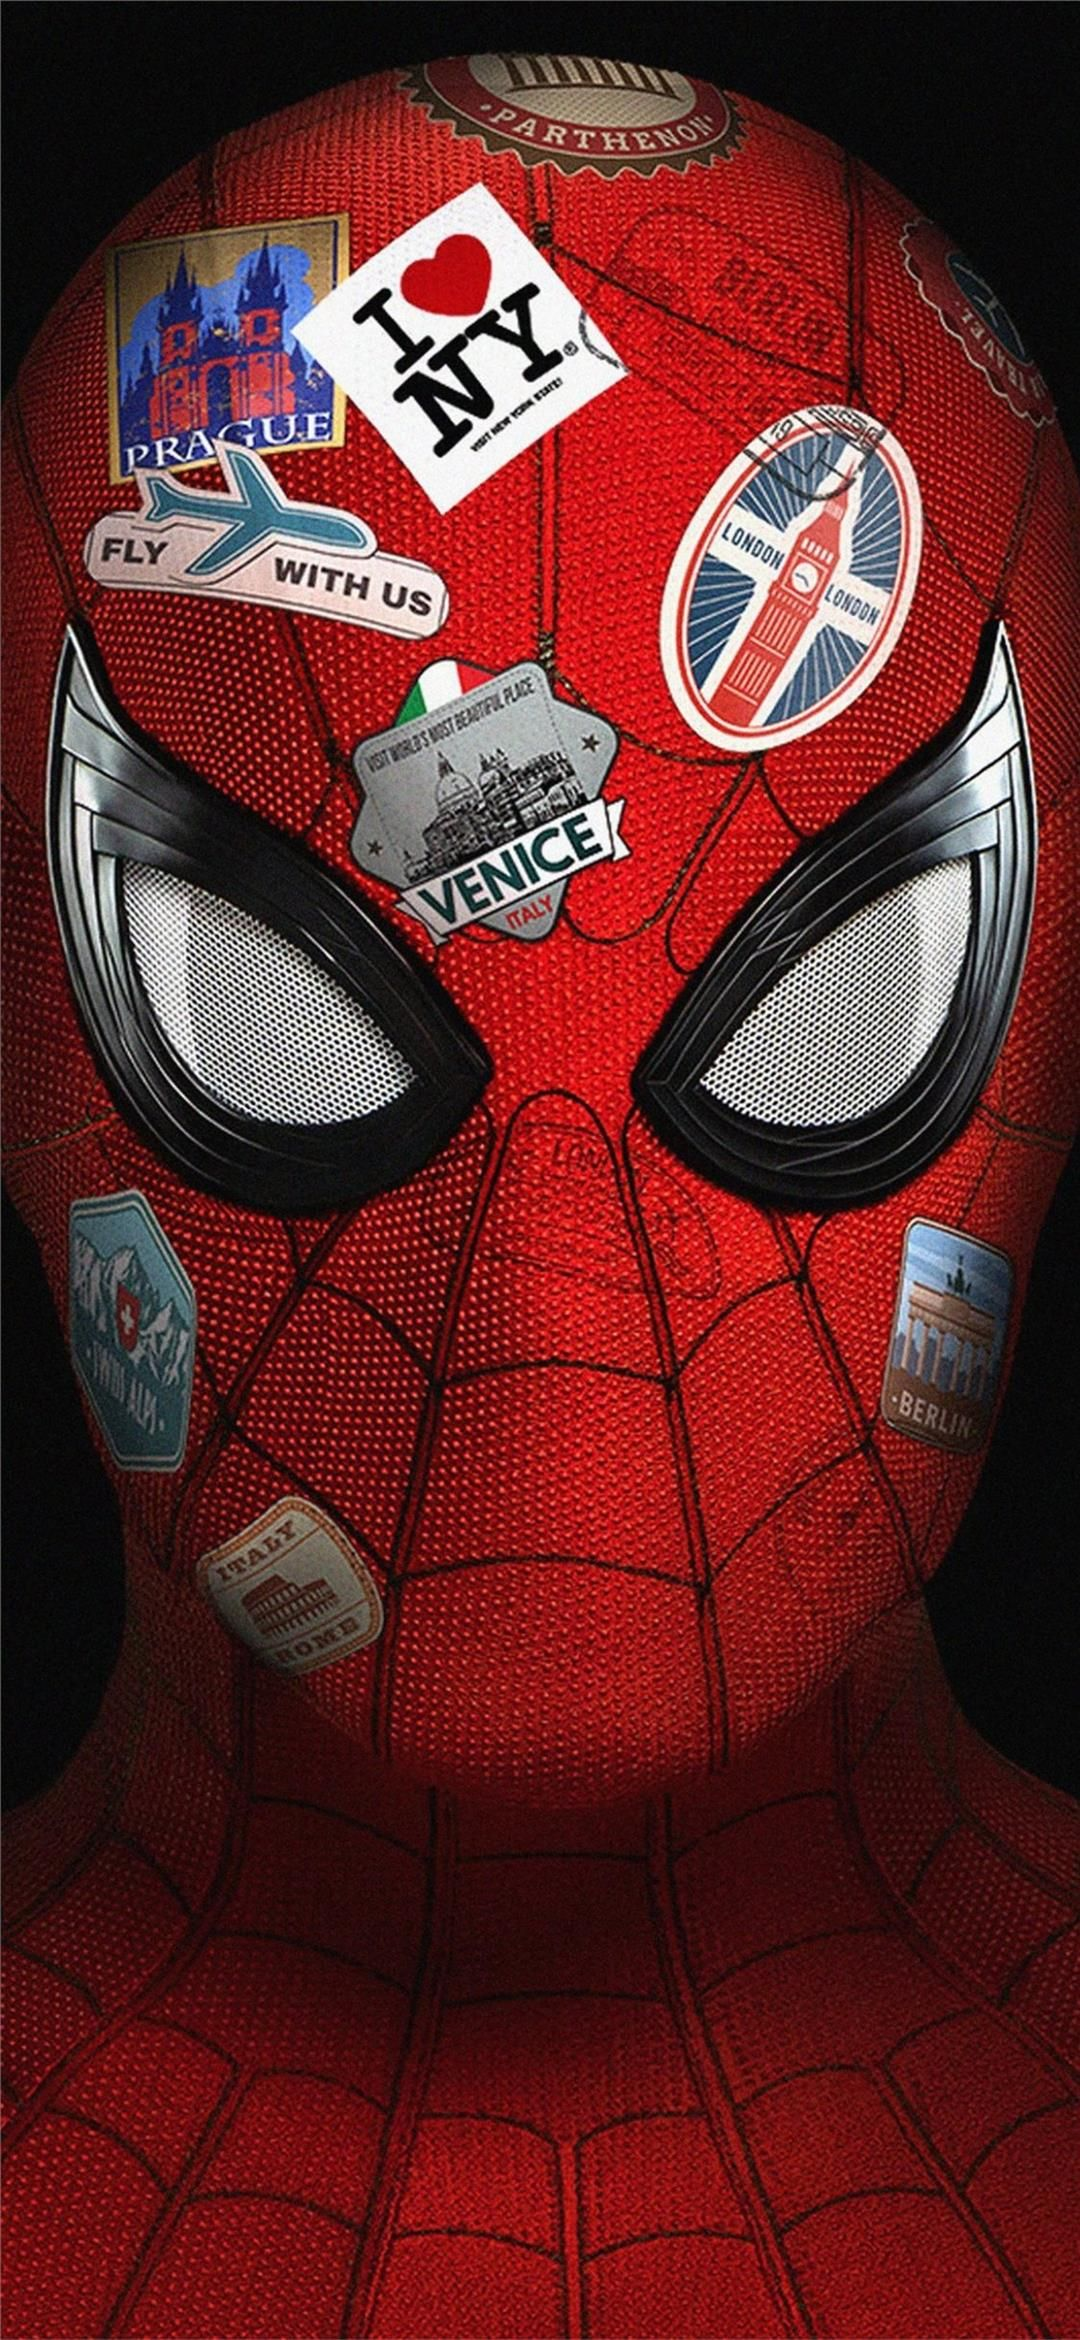 Free Download The 4k Spider Far From Home Wallpaper Beaty Your Phone Movies Spide In 2020 Apple Logo Wallpaper Iphone Kaws Iphone Wallpaper Apple Wallpaper Iphone